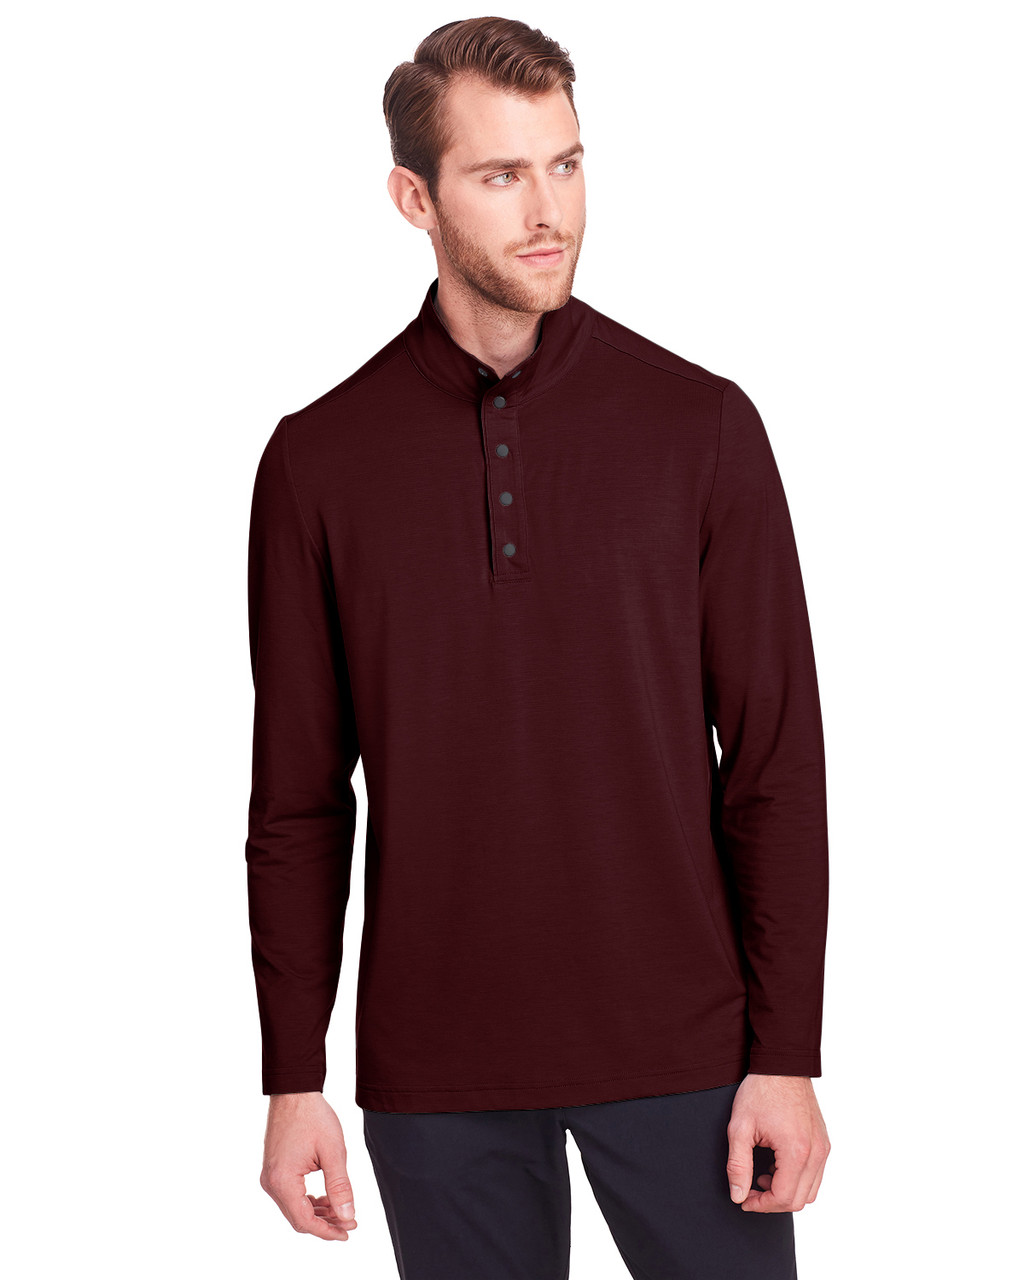 Burgundy - NE400 North End Men's Jaq Snap-Up Stretch Performance Pullover Long Sleeve Shirt | BlankClothing.ca